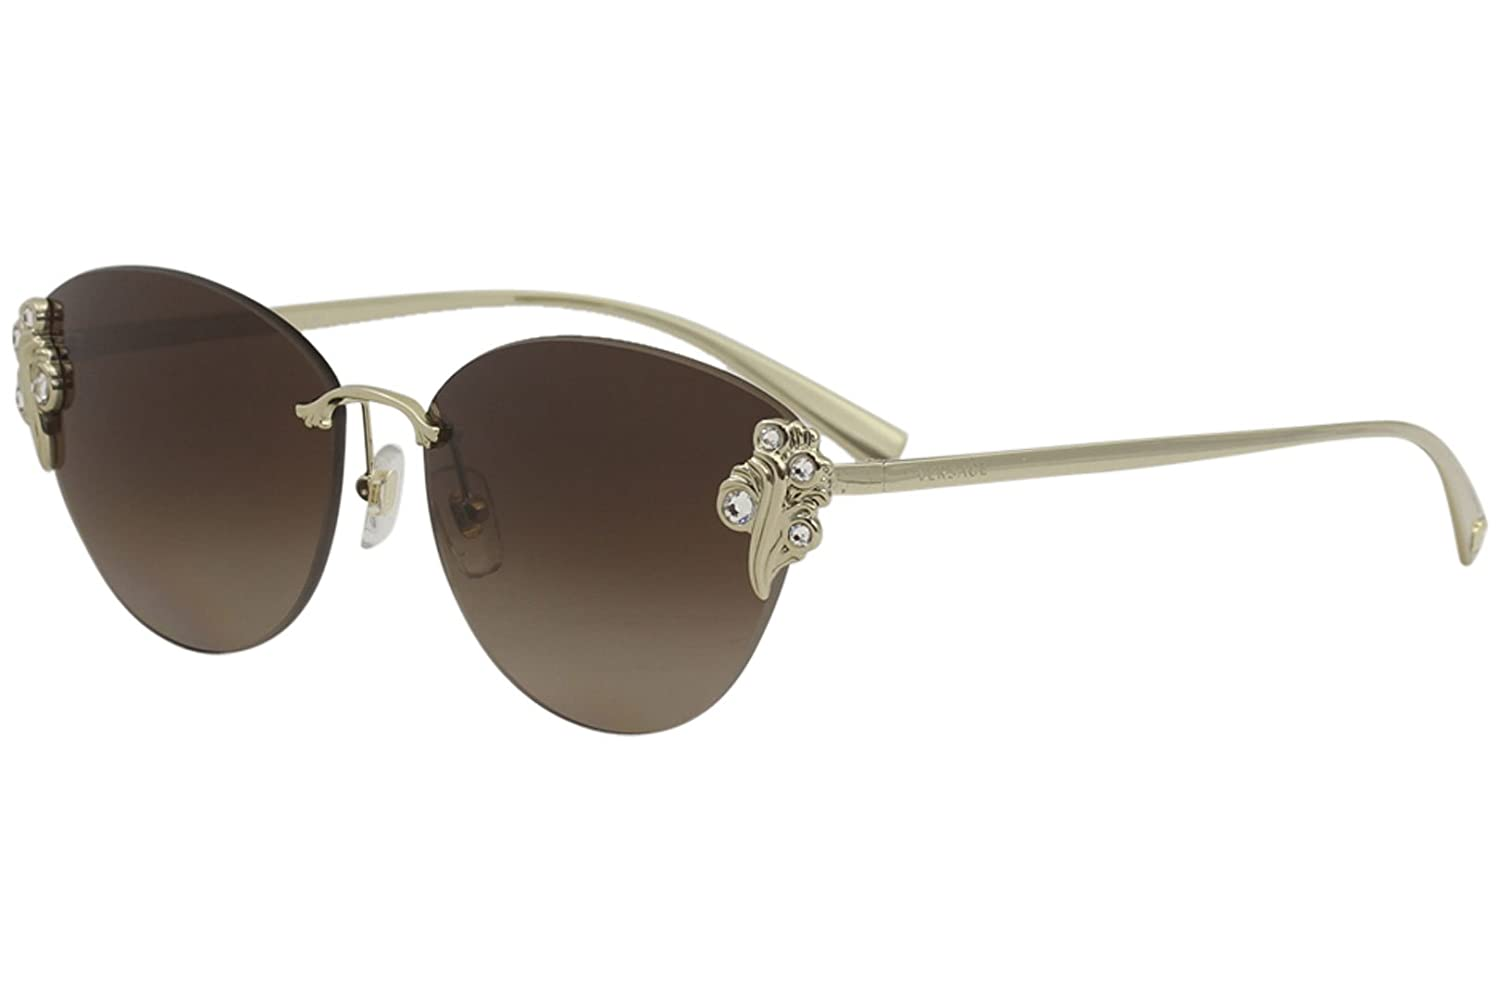 0ef355ee1a3 Amazon.com  Versace VE2196B Sunglasses 125213-58 - Pale Gold Frame ...